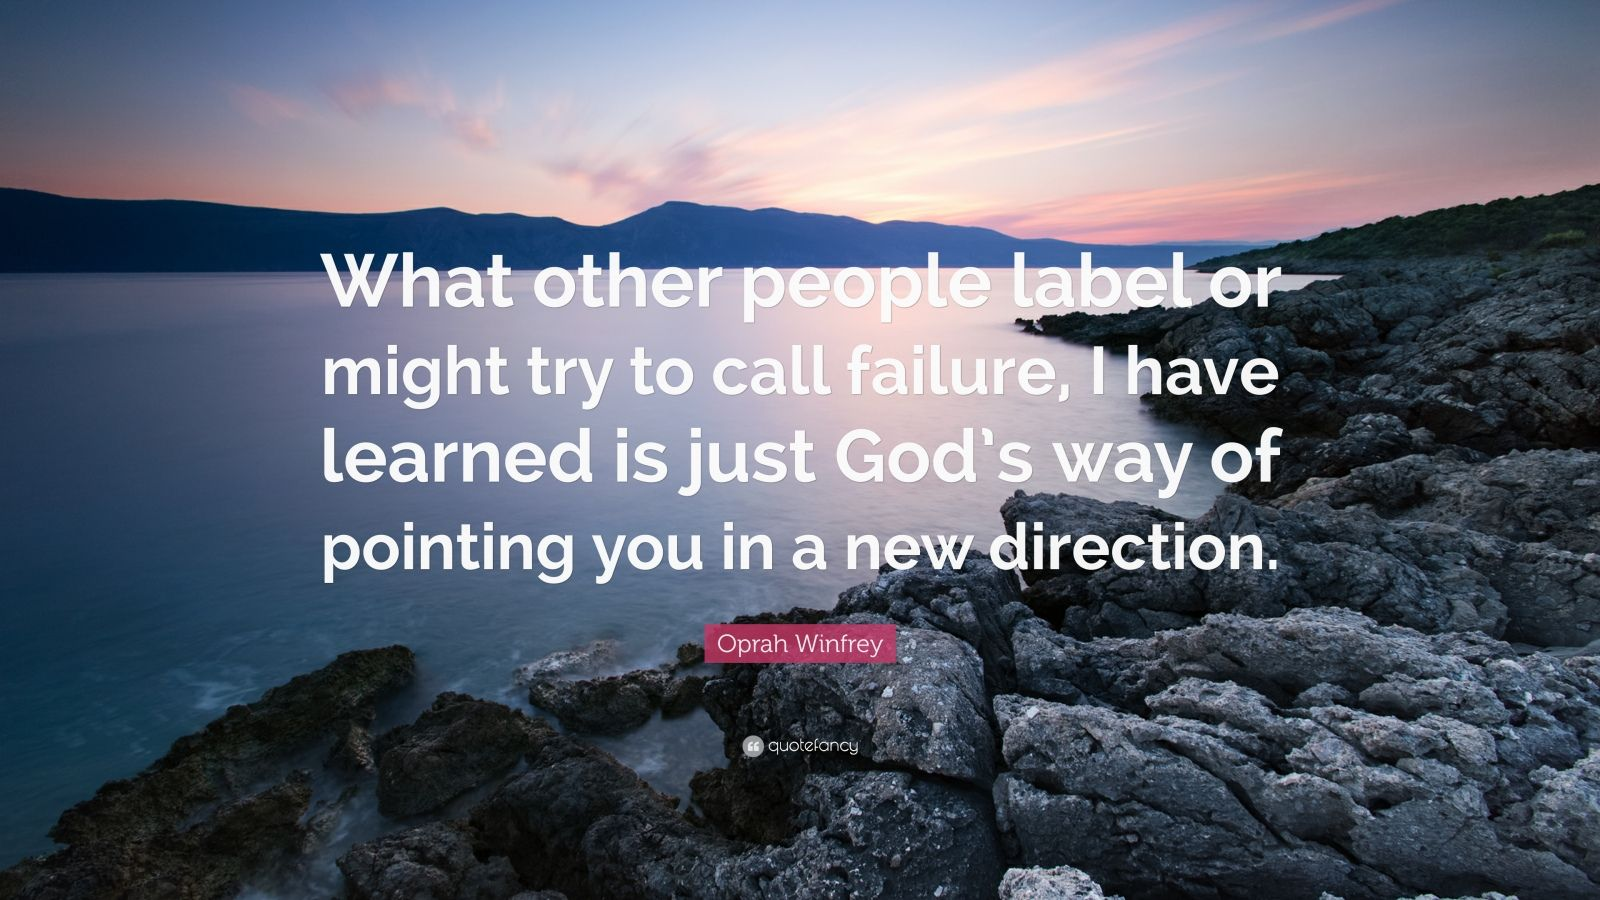 """Oprah Winfrey Quote: """"What other people label or might try to call failure, I have learned is just God's way of pointing you in a new direction."""""""